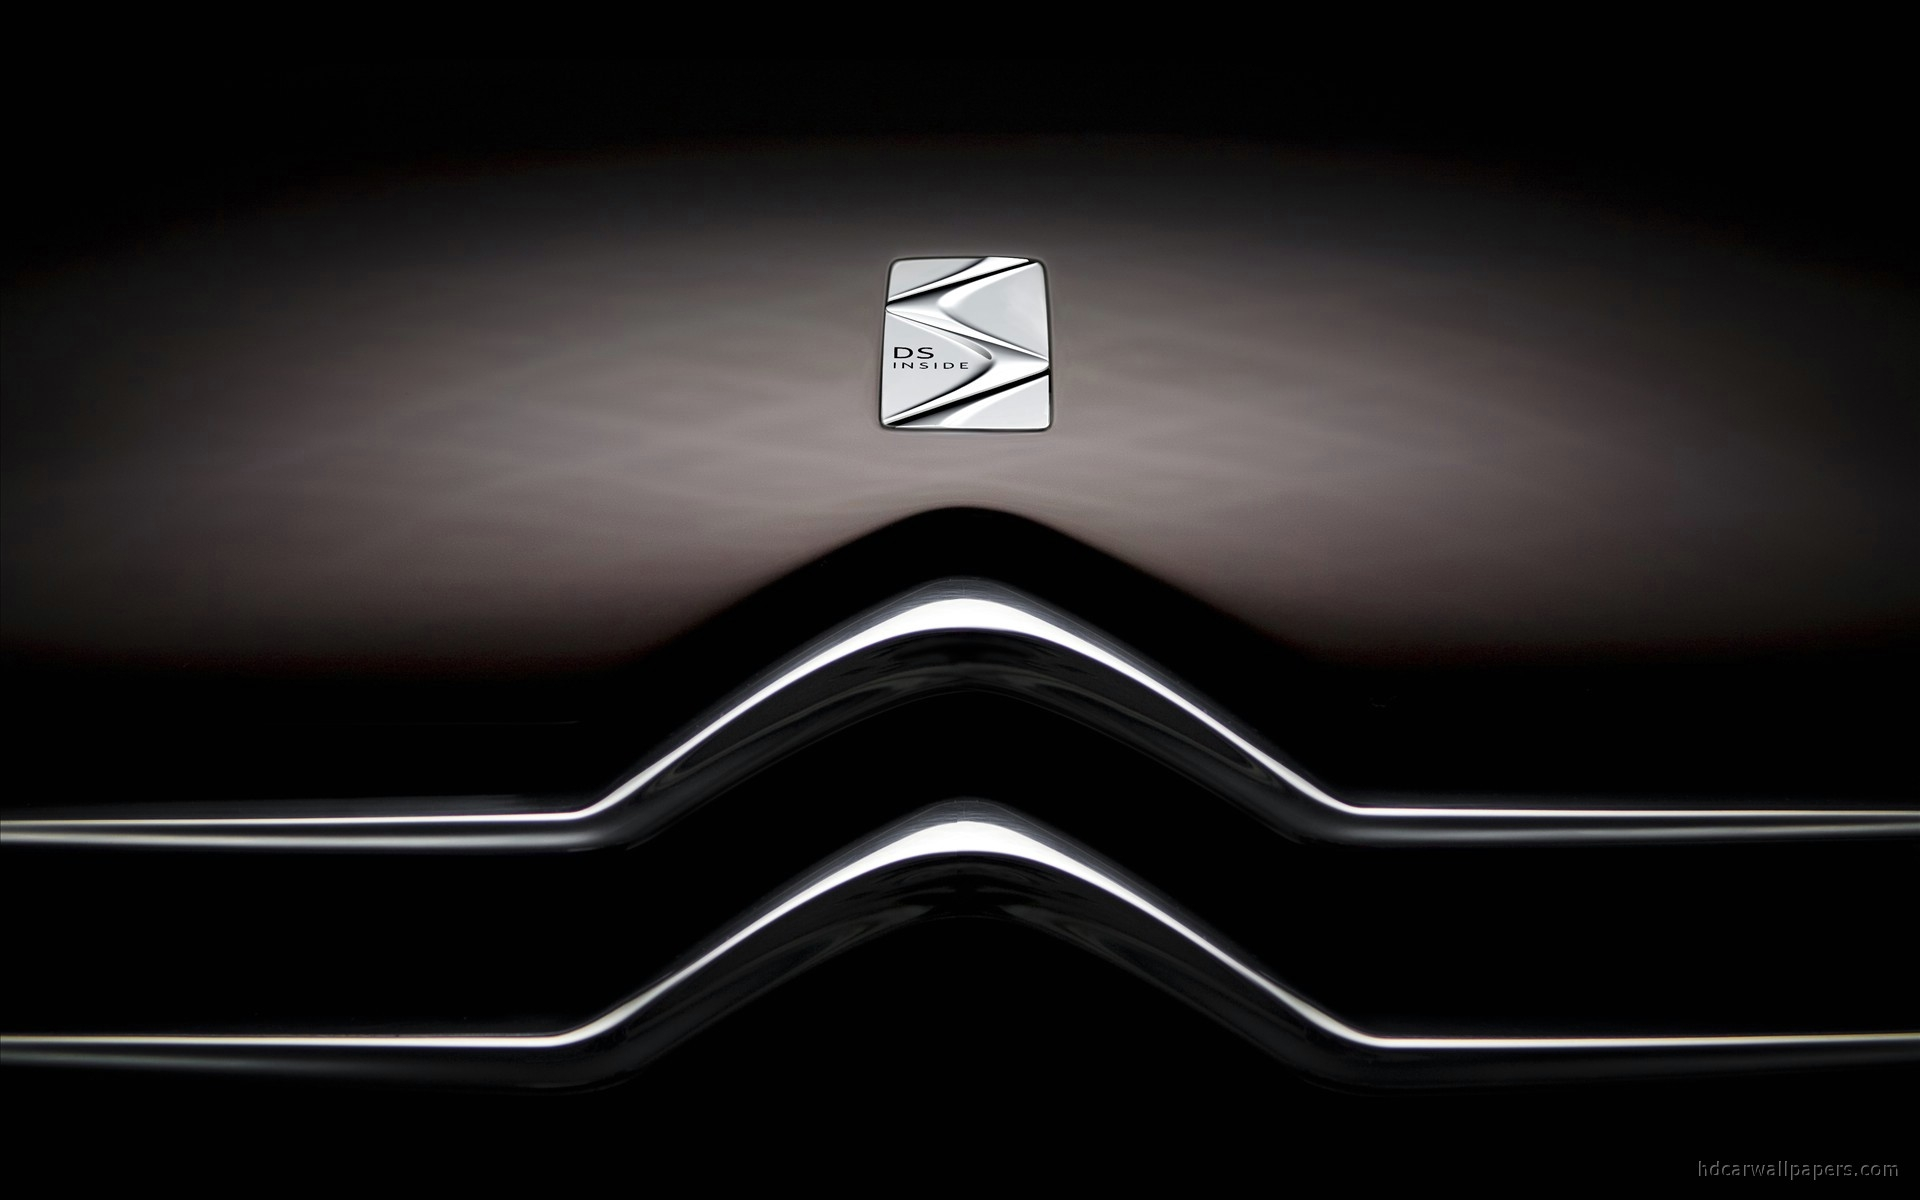 citroen-ds-inside-logo-Citroen-Ds-Inside-Logo-Pictures-Car-Hd-intended-for-wallpaper-wpc9003584